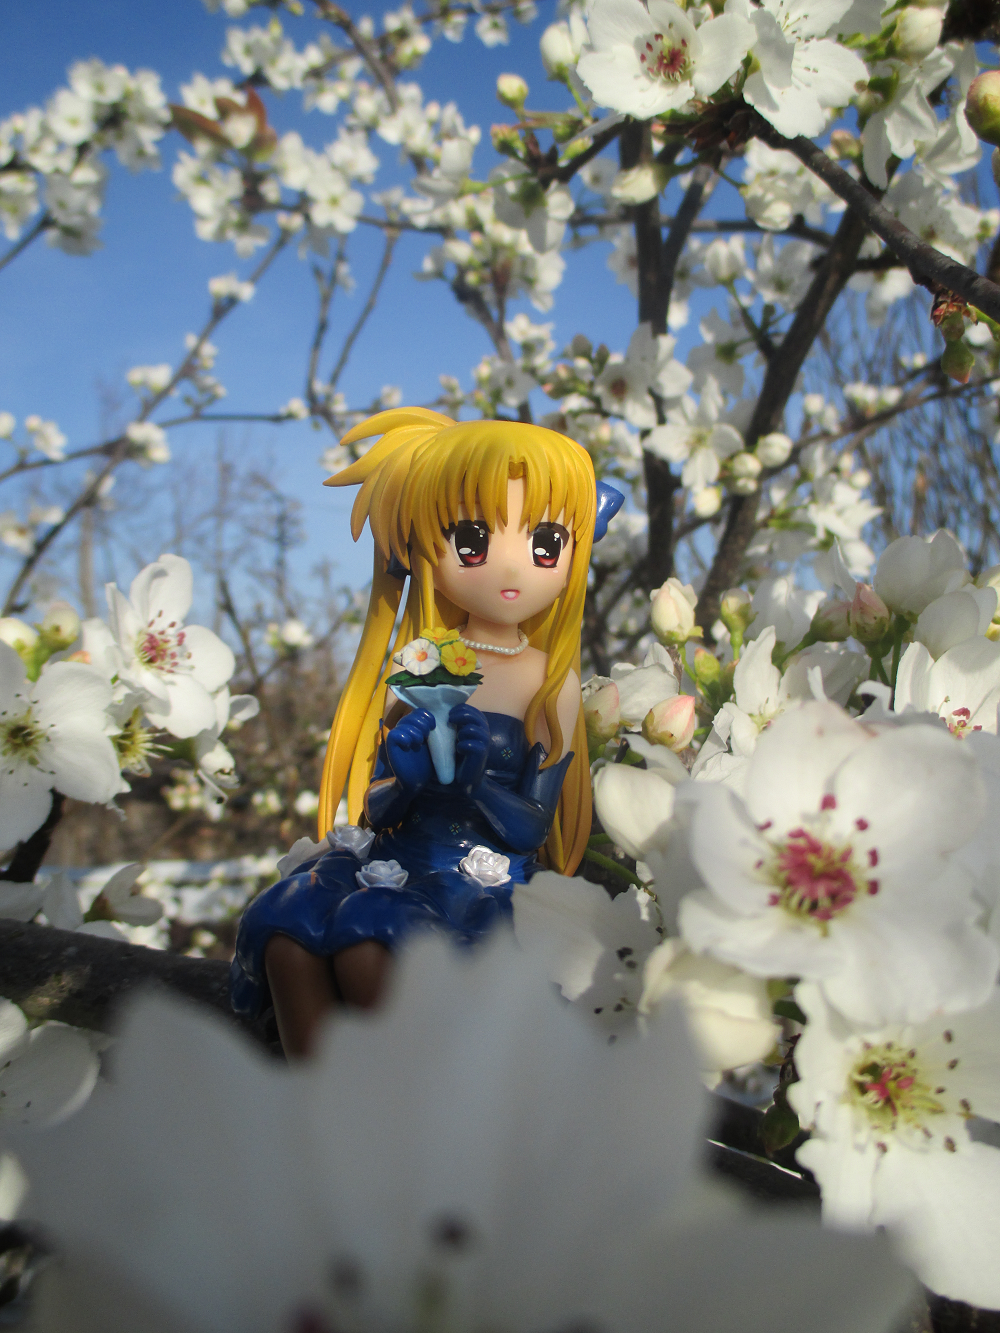 blond_hair ribbon red_eyes dress sitting necklace kotobukiya elbow_gloves tights blue_dress cherry_blossom bouquet blue_gloves sitting_pose long_hair gloves blue_ribbon fate_testarossa cherry_blossoms mahou_shoujo_lyrical_nanoha_the_movie_1st murakami_haruhi hair_ribbons looking_up looking_aside tree_branch brown_tights hair_ribbon white_flowers pearl_necklace yellow_flower